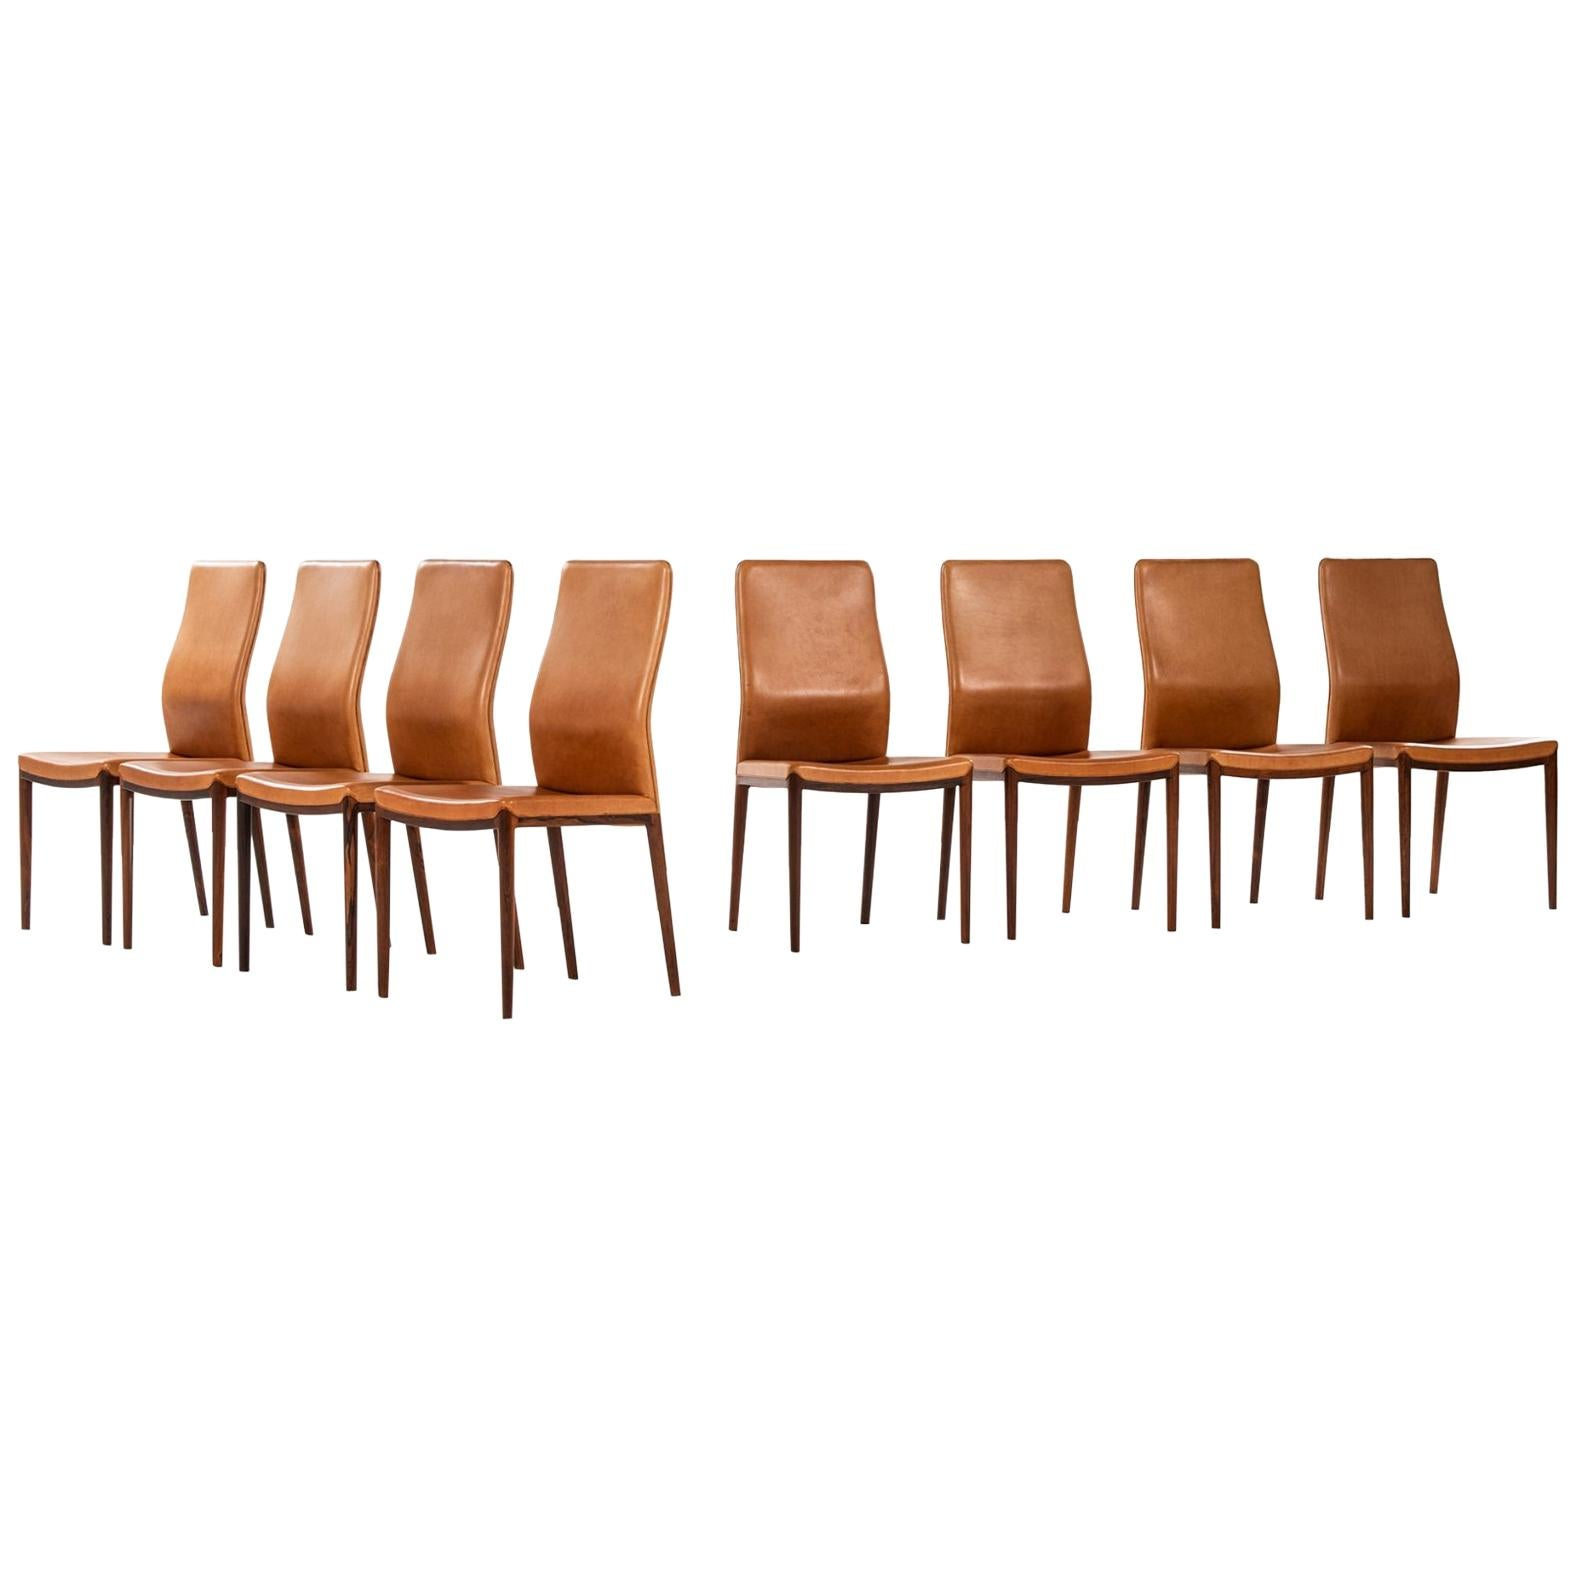 Helge Vestergaard Jensen Dining Chairs Produced by P. Jensen & Co. Cabinetmakers